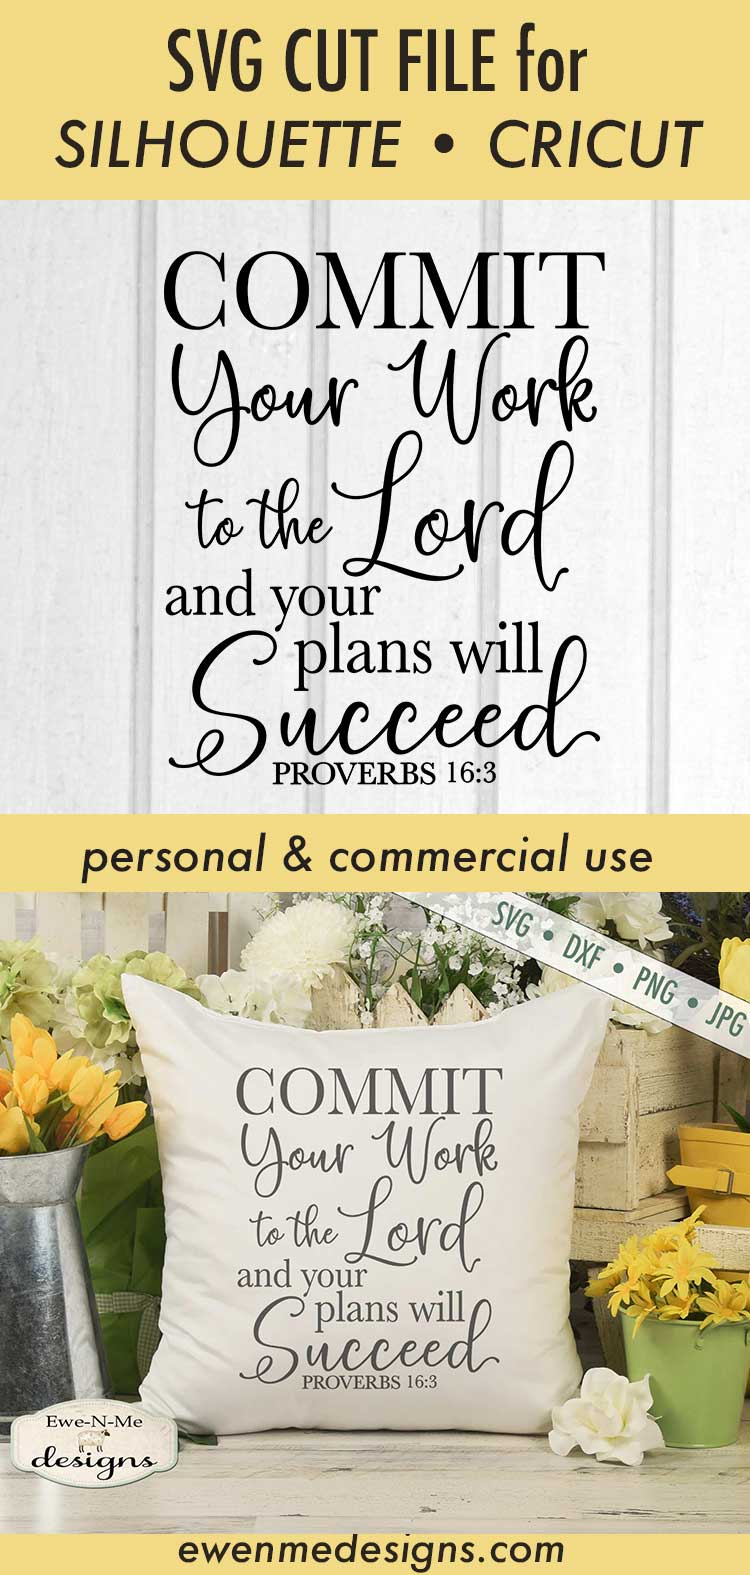 Commit Your Work To The Lord - Bible Verse Proverbs 16 - SVG example image 4